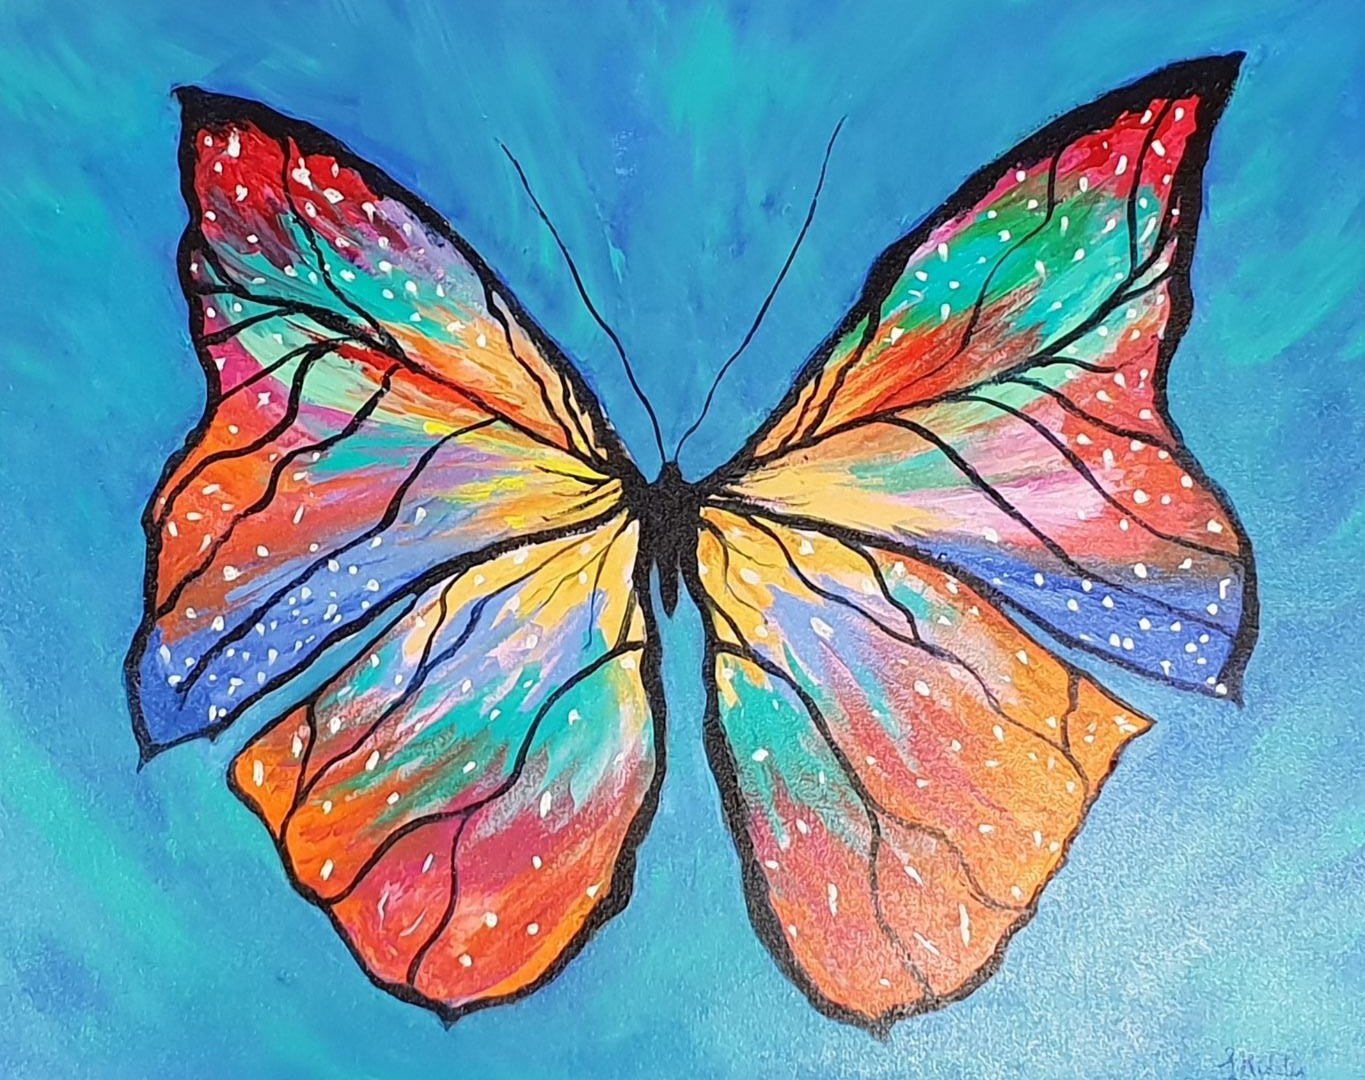 """Free as a Butterfly"" by Lindy Midalia"